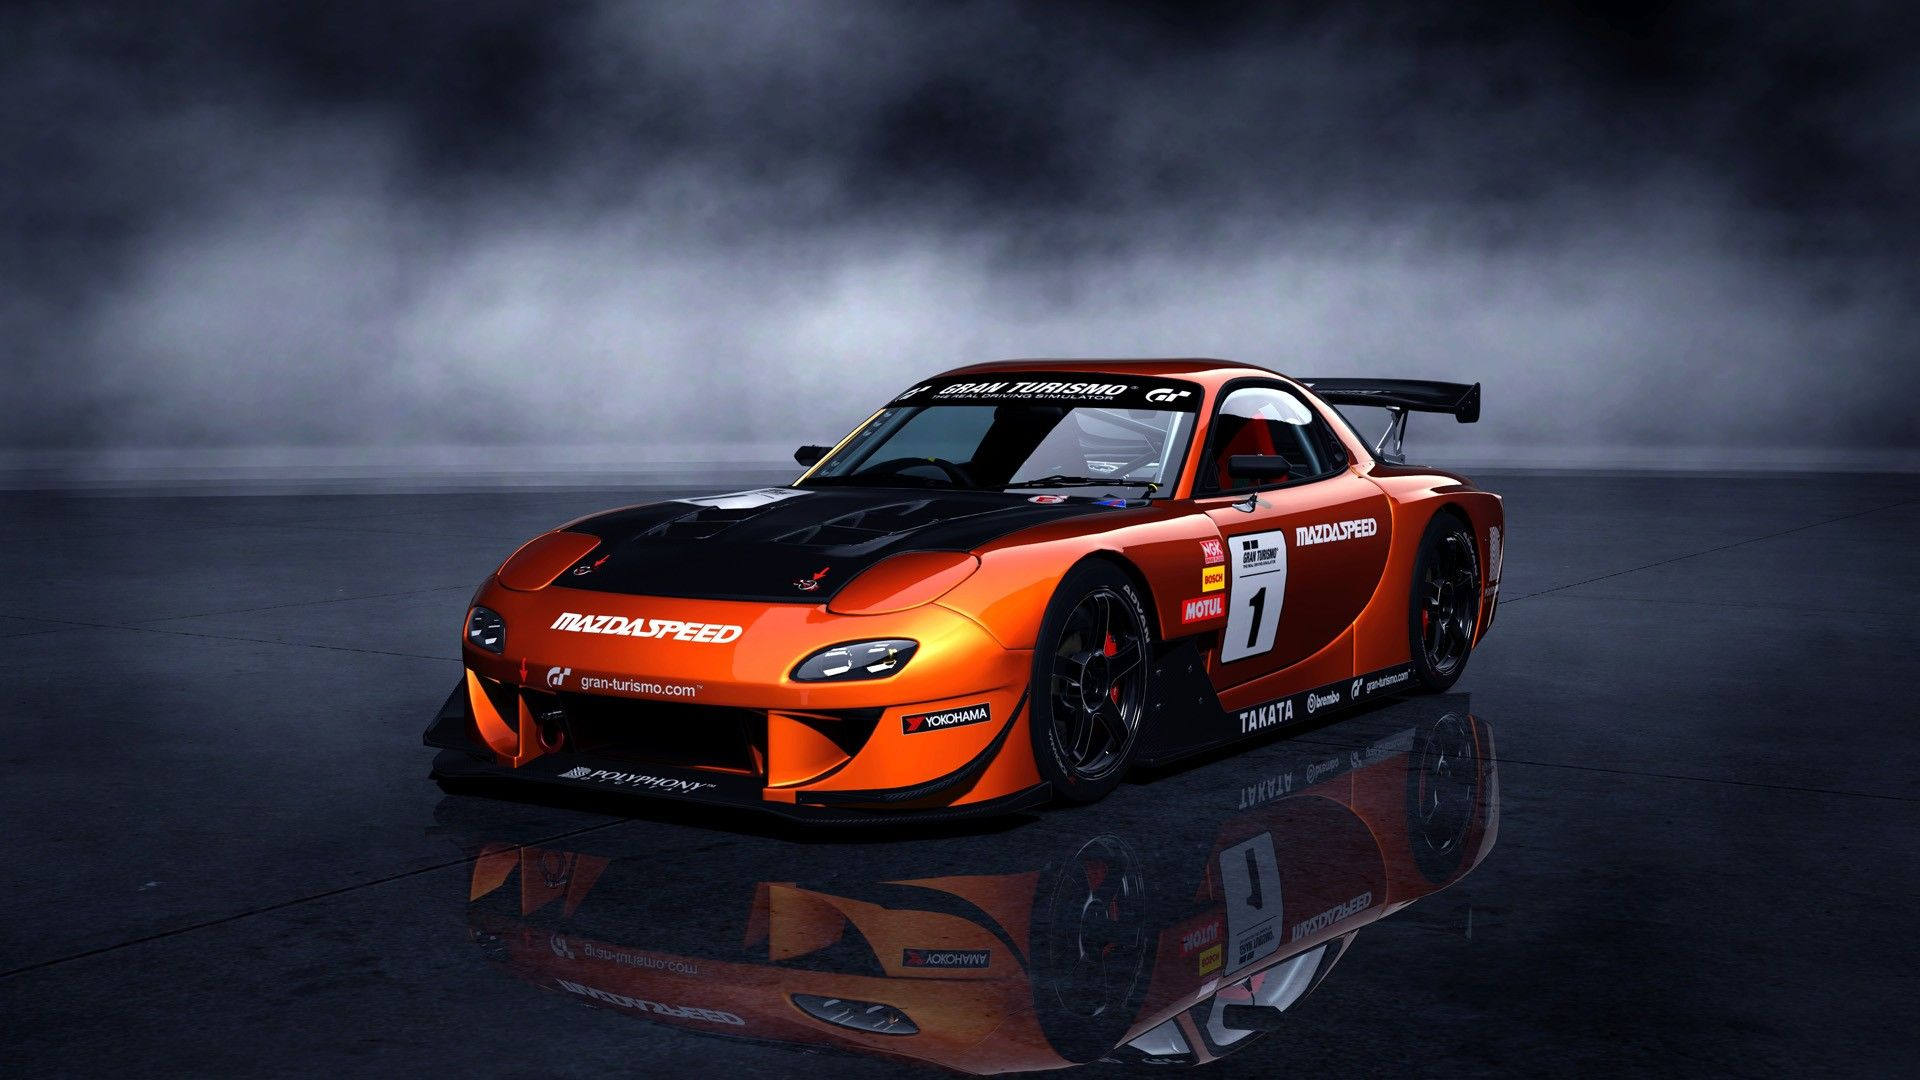 Amazing Stylish And Expensive Racing Cars Hd Wallpapers: Amazing Mazda RX 7 Racing Car Wallpapers Desktop